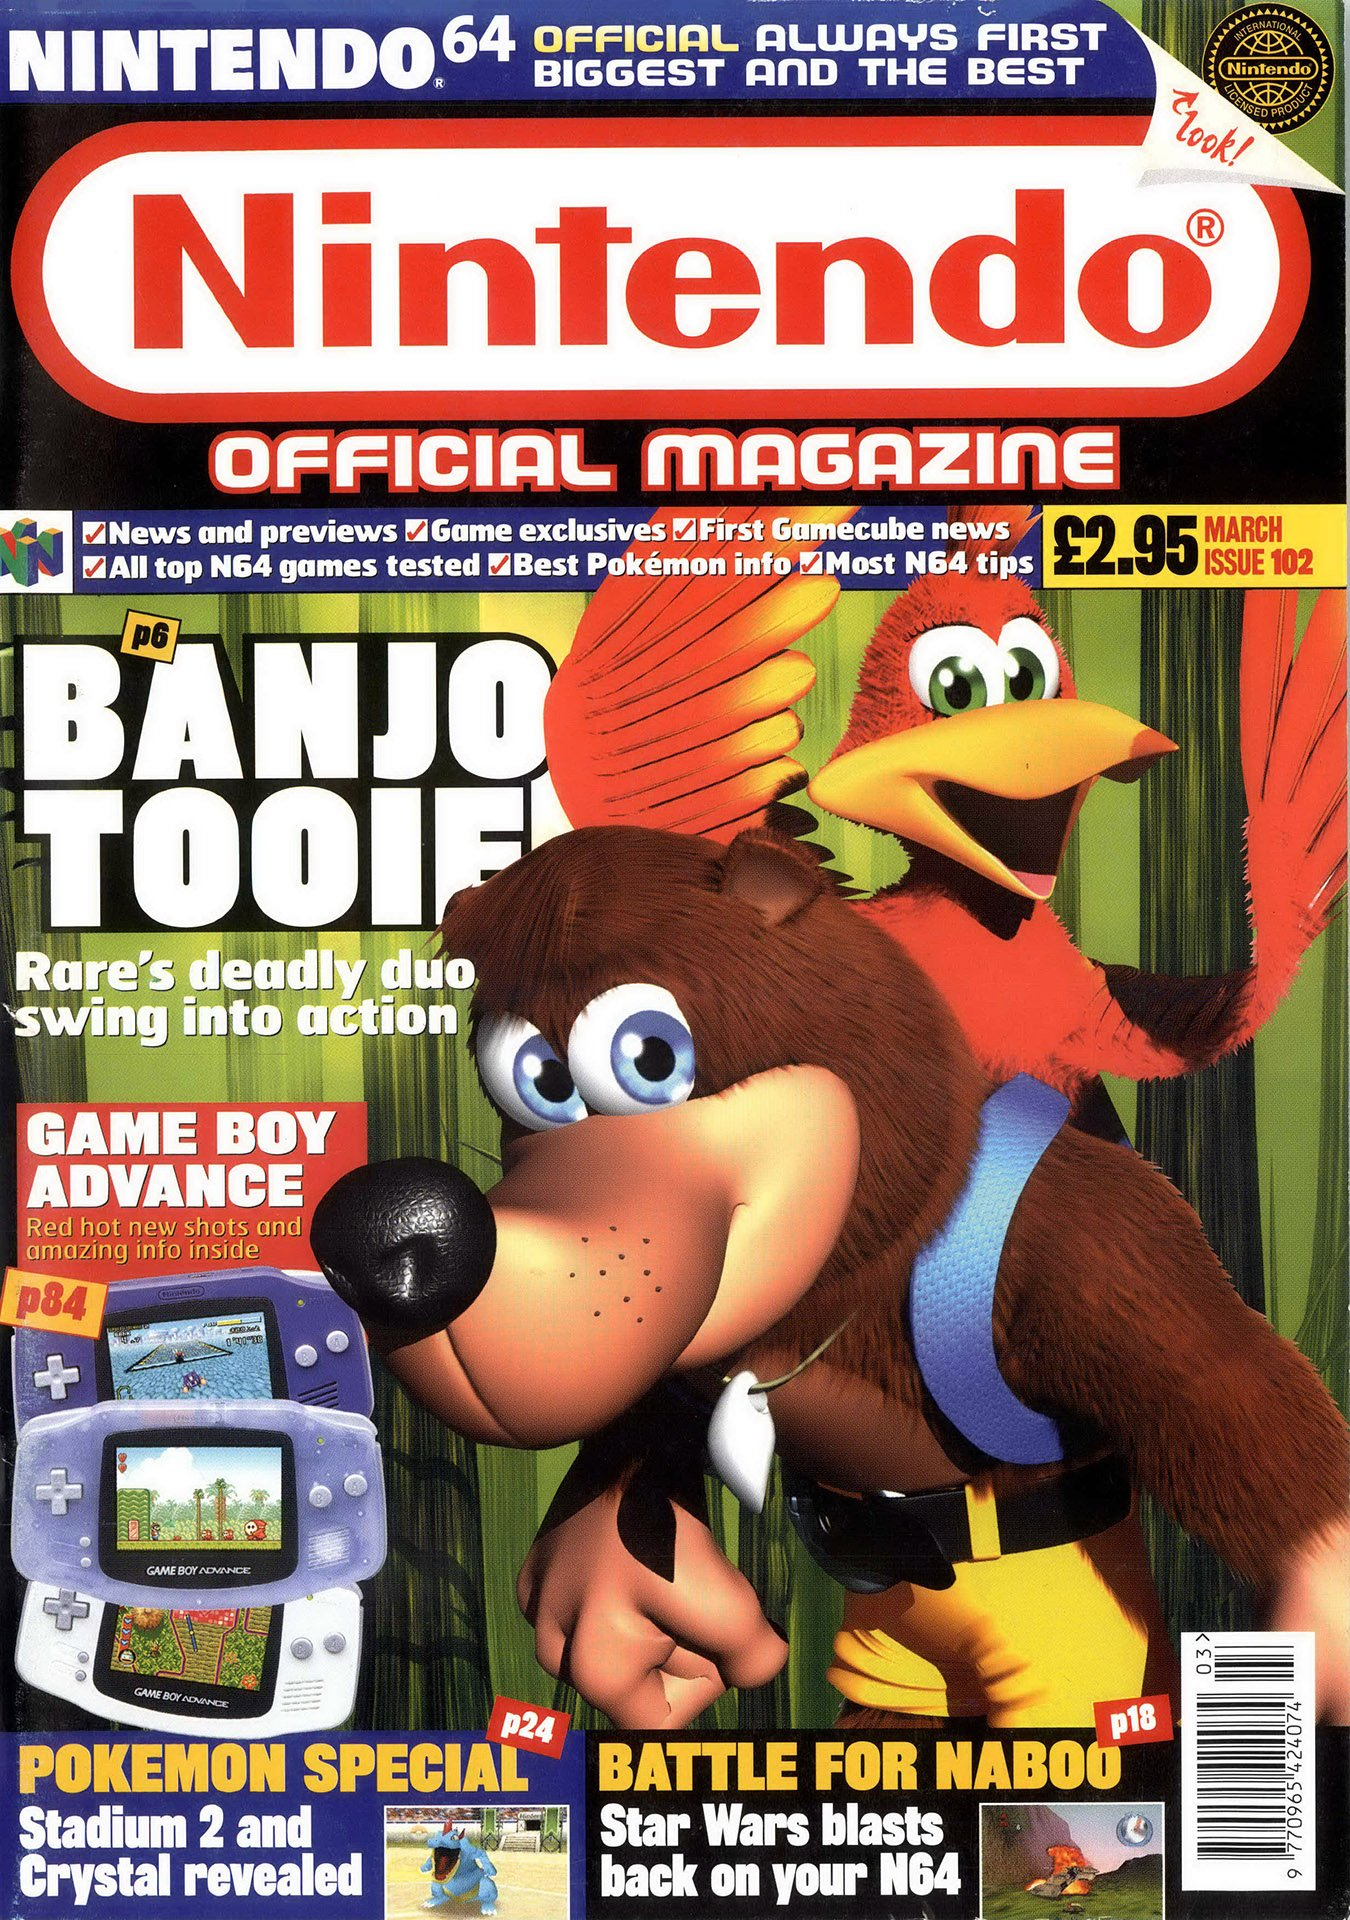 Nintendo Official Magazine 102 (March 2001)